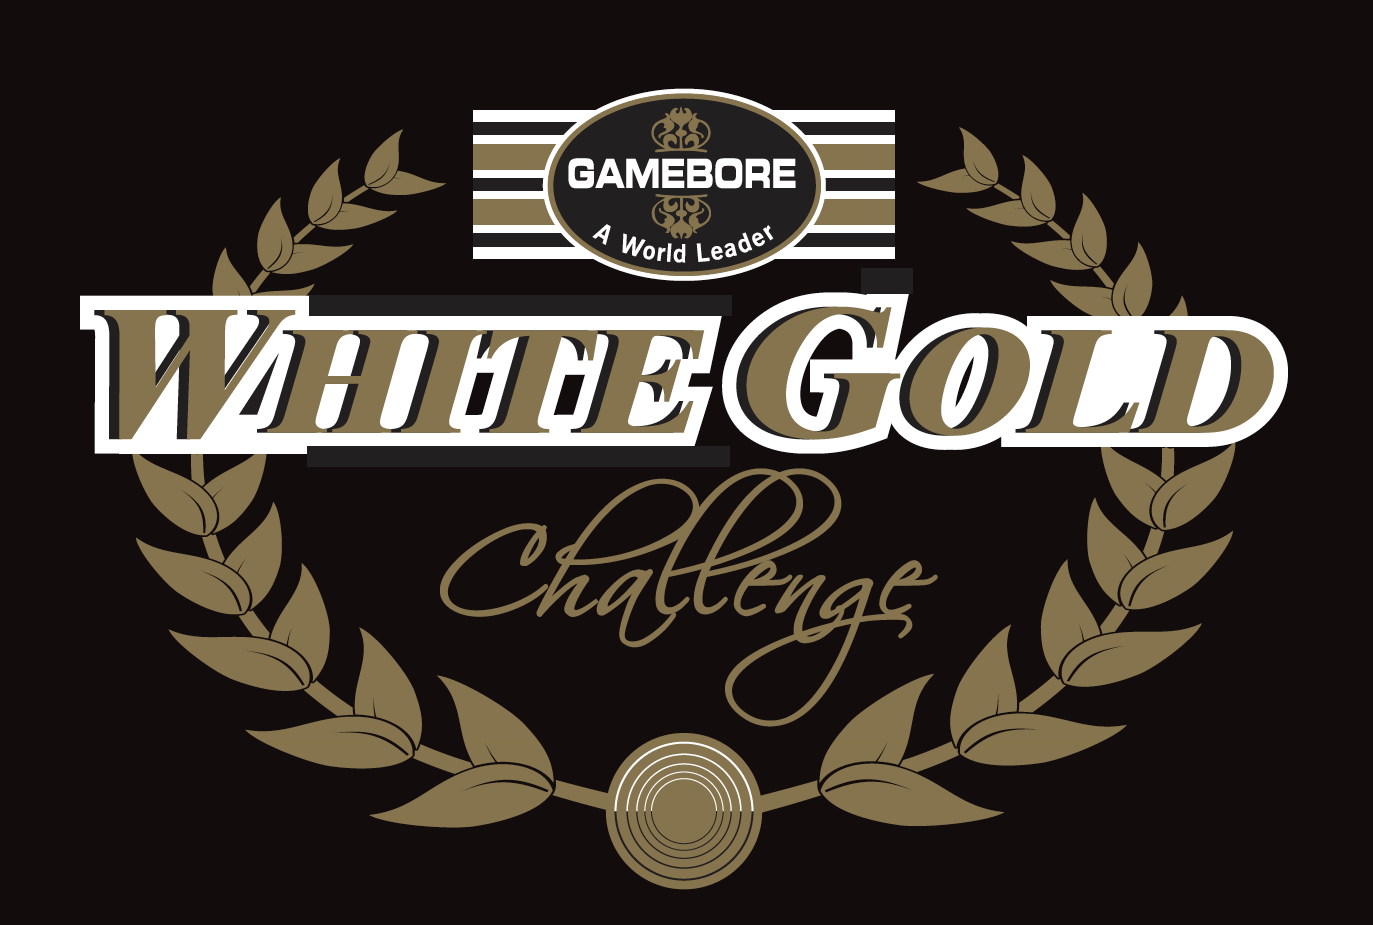 The 2016 White Gold Challenge